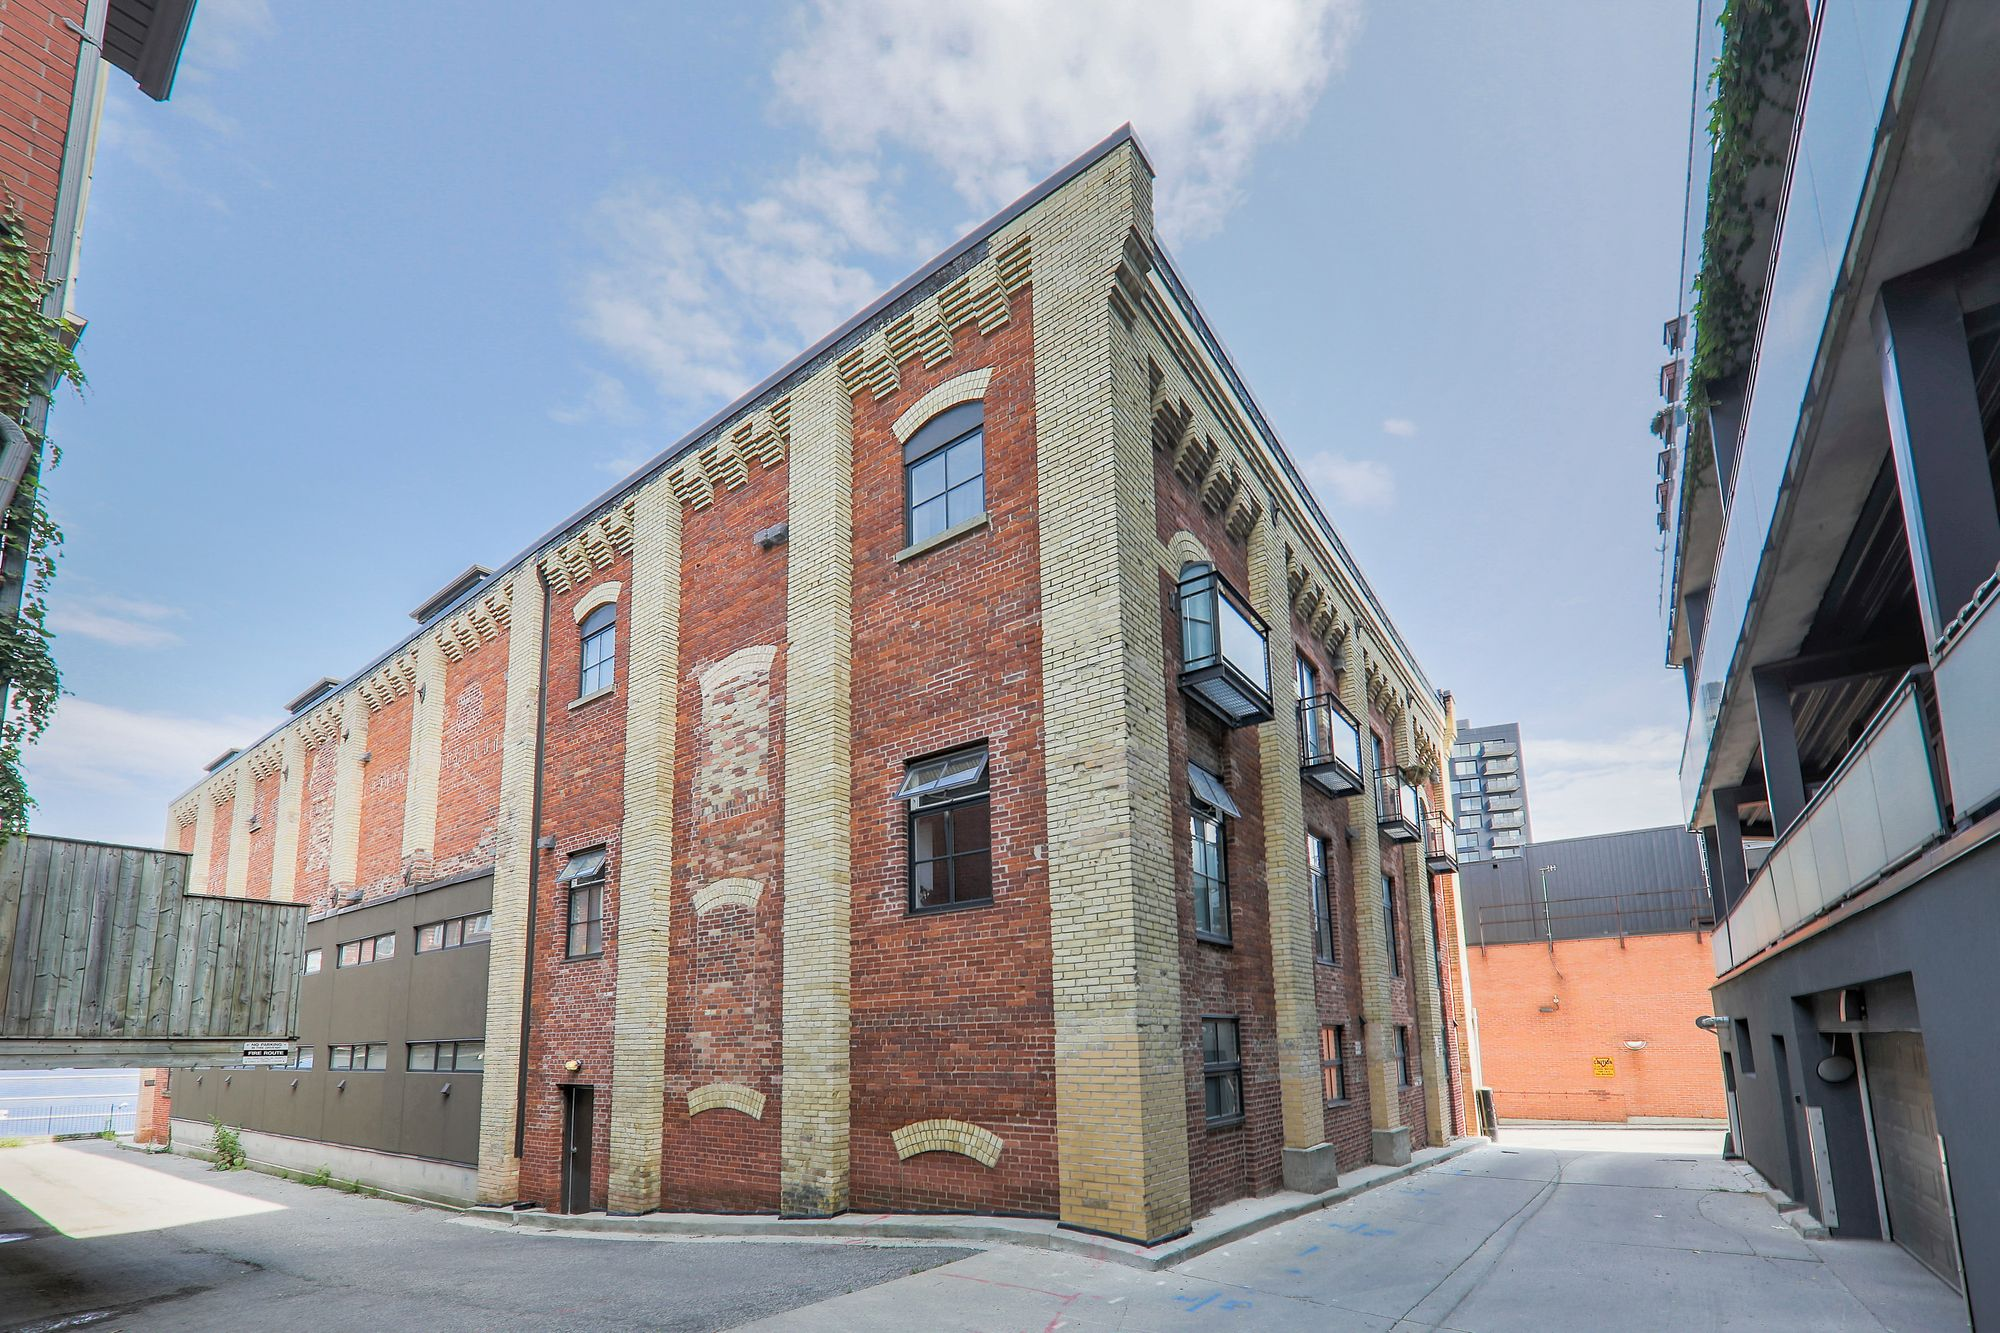 The Malthouse Loft Towns at 39 Old Brewery Lane & 27 Old Brewery Lane. This loft is located in  Downtown, Toronto - image #2 of 5 by Strata.ca